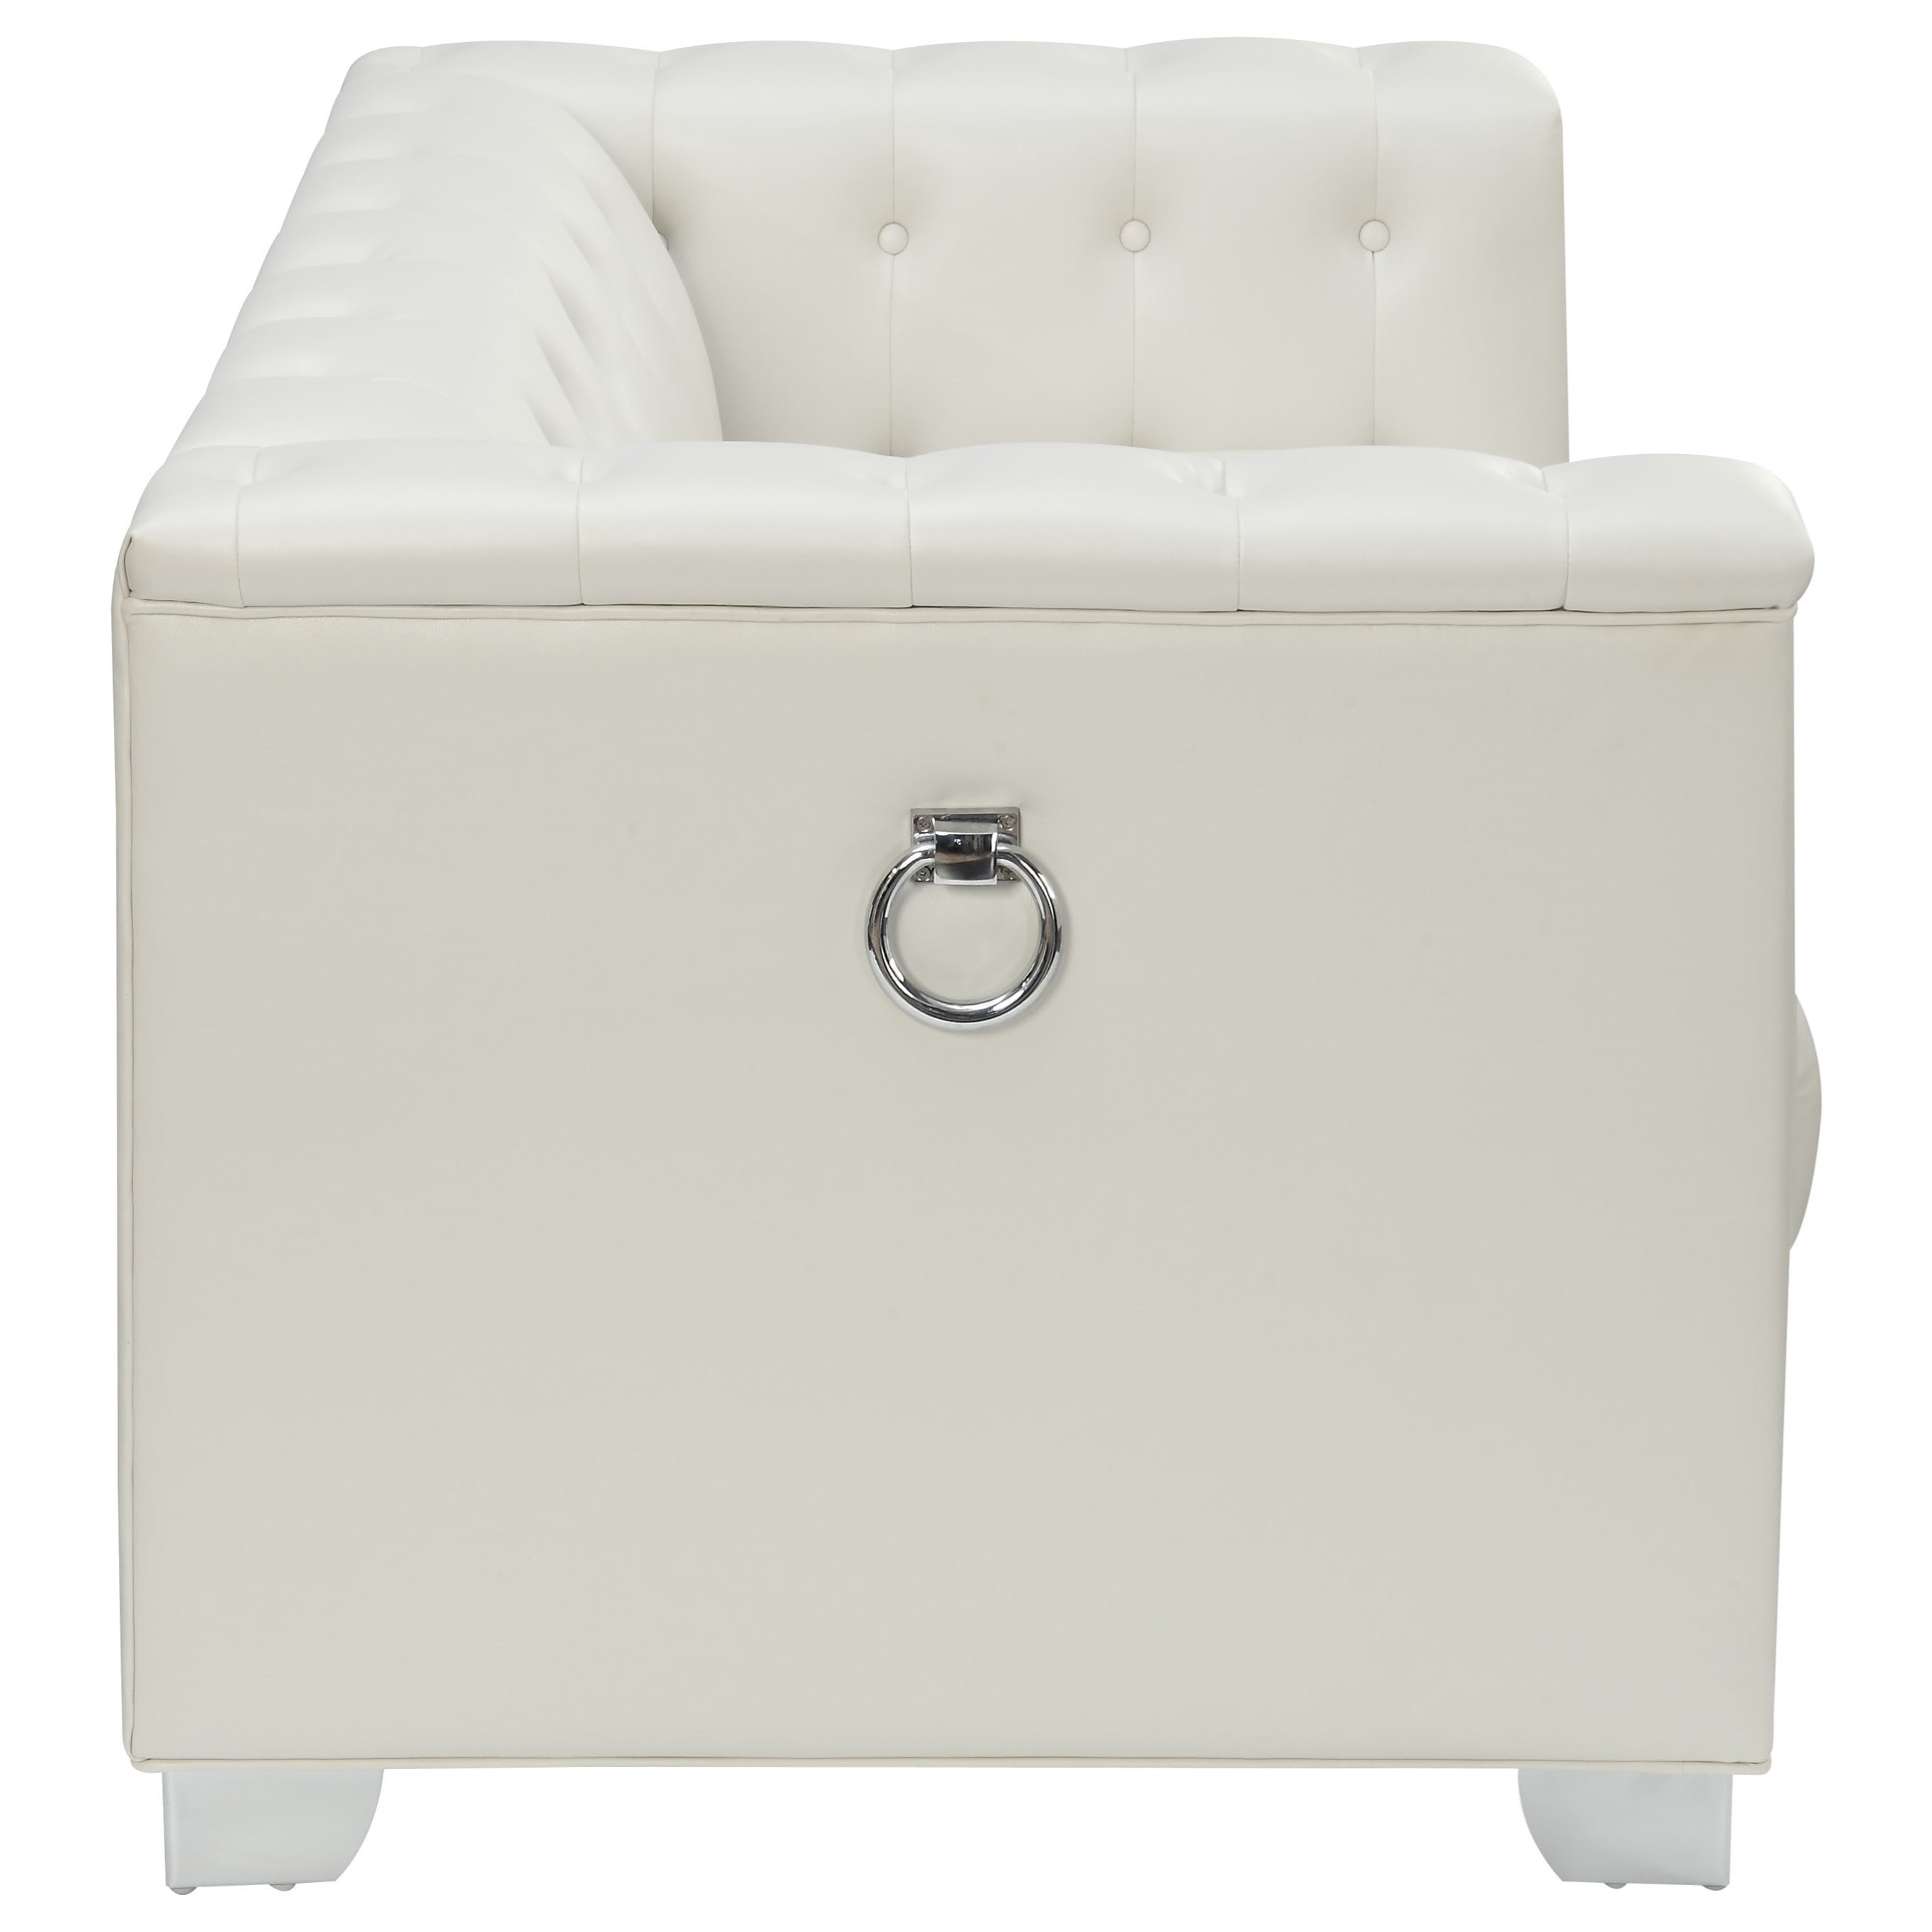 loveseat back pdx co reviews ellayne wayfair furniture high darby tufted home